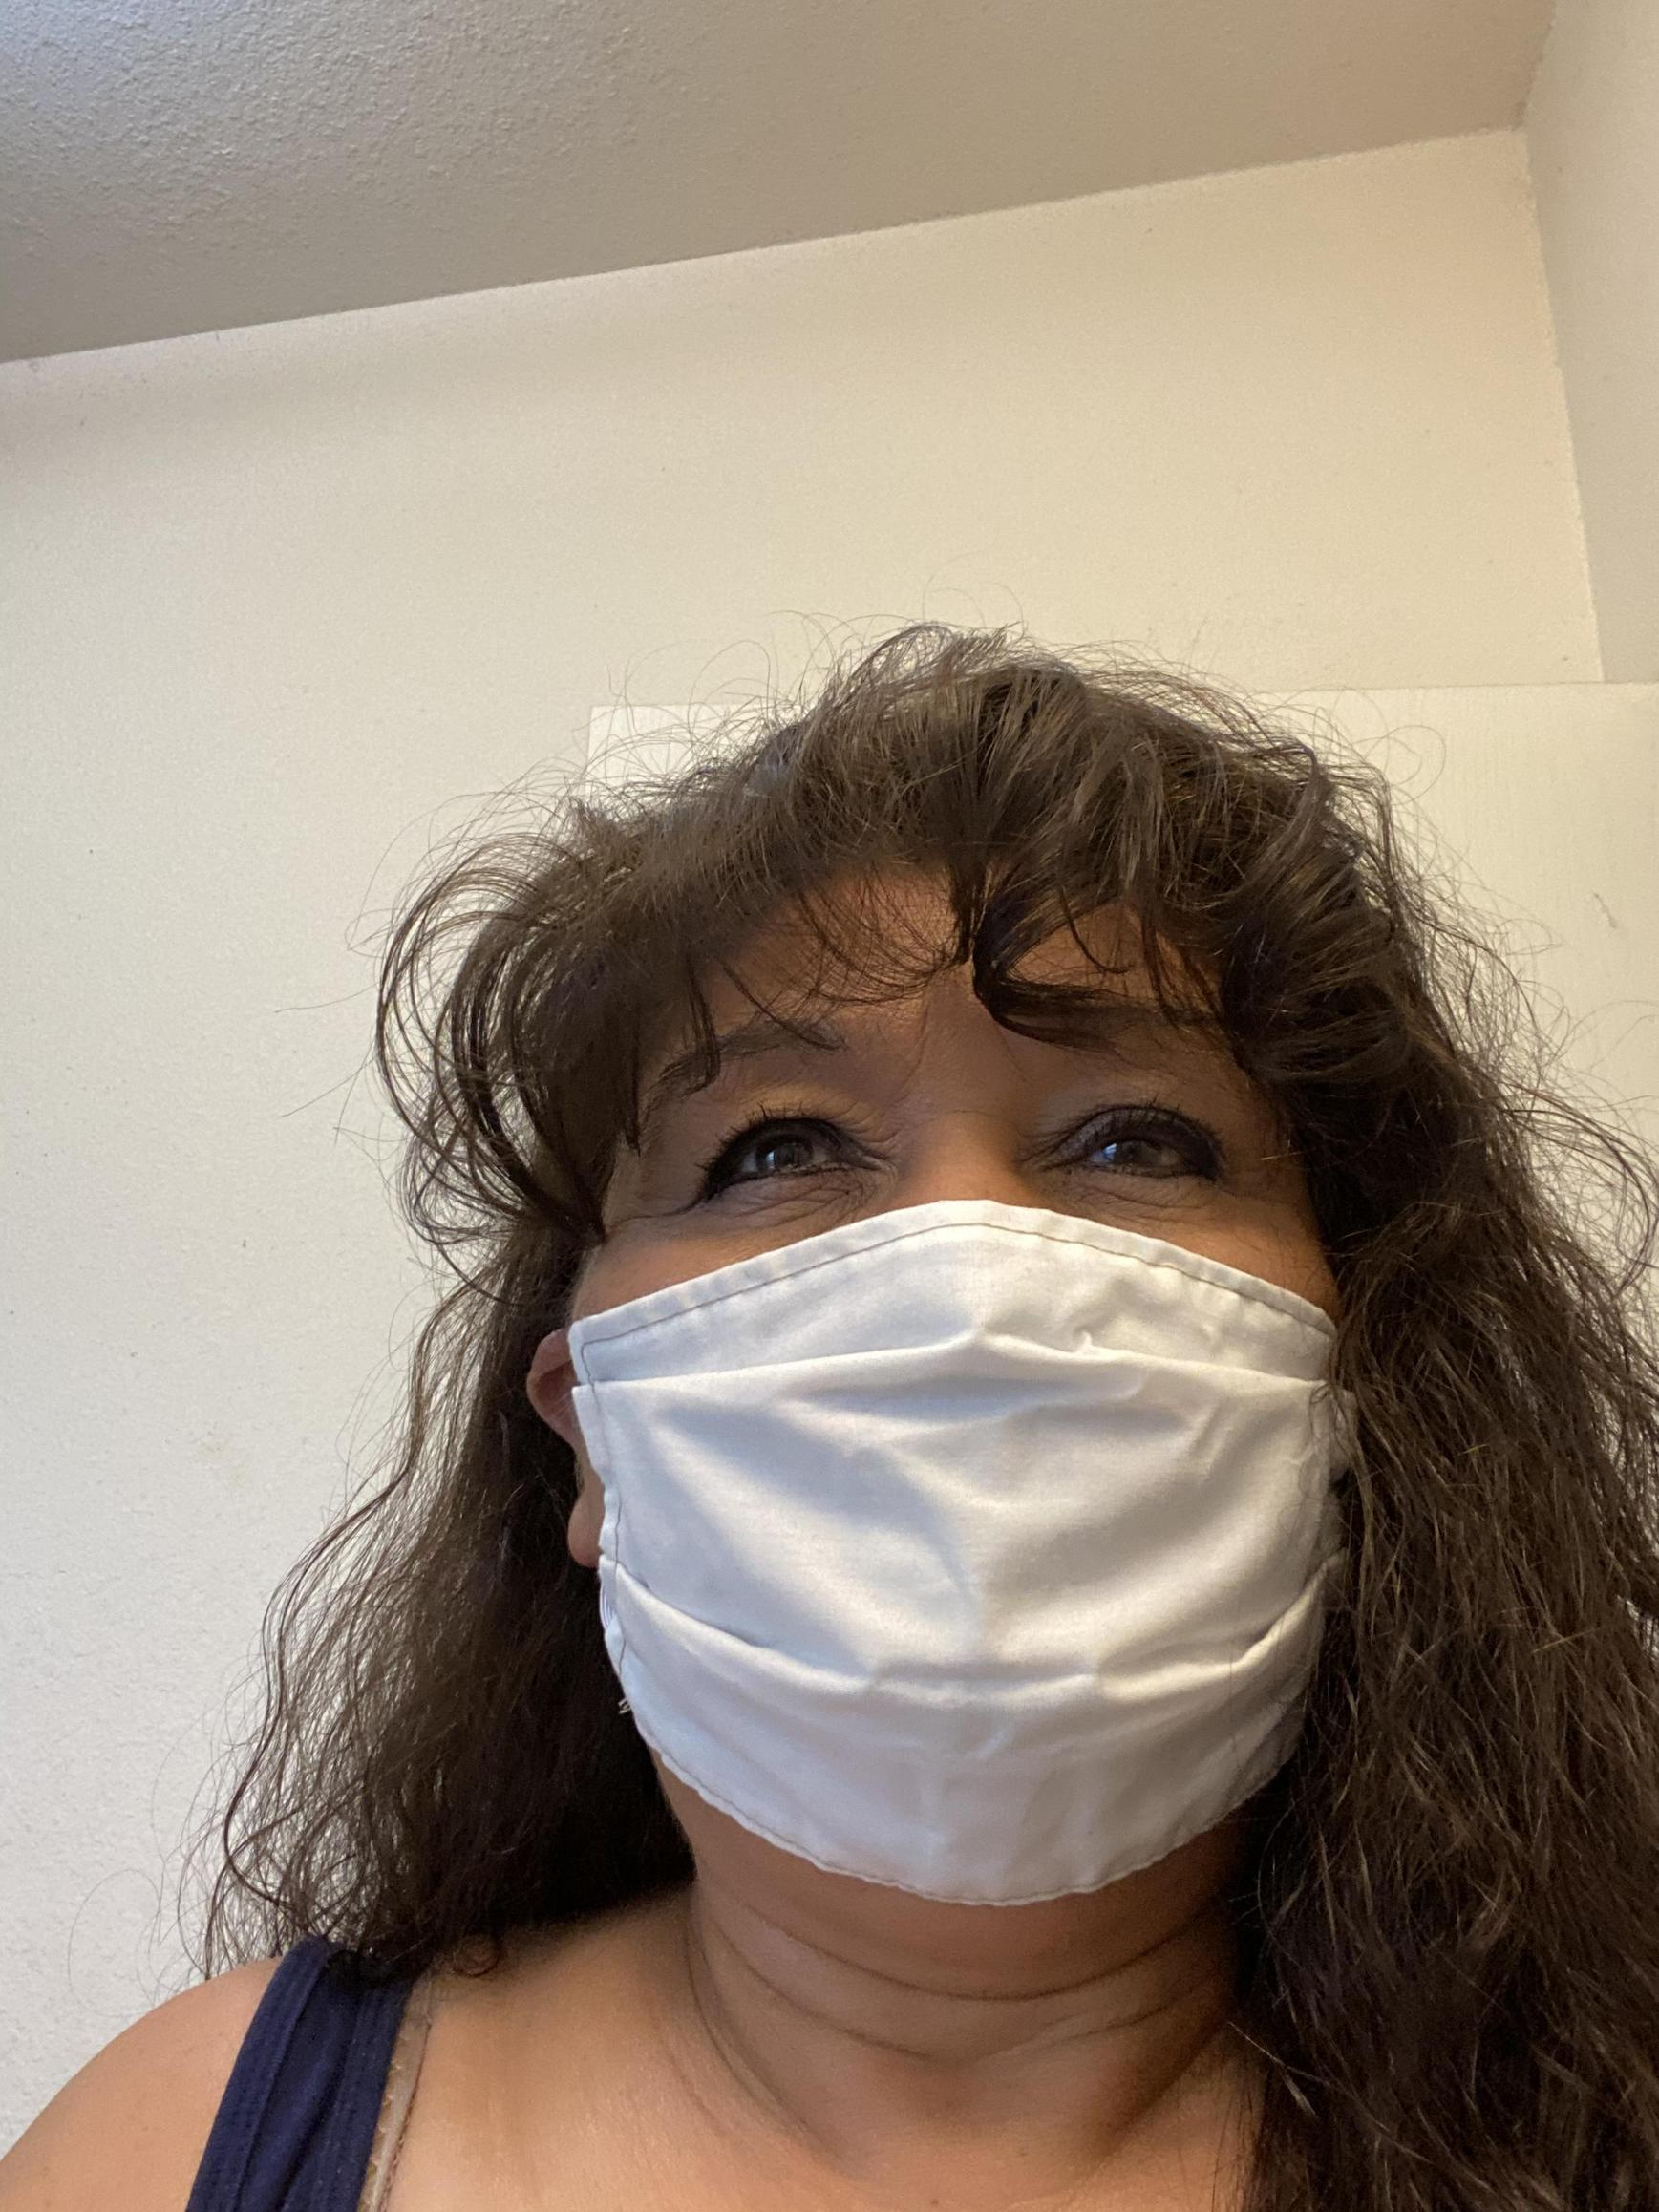 staff member takes selfie wearing mask